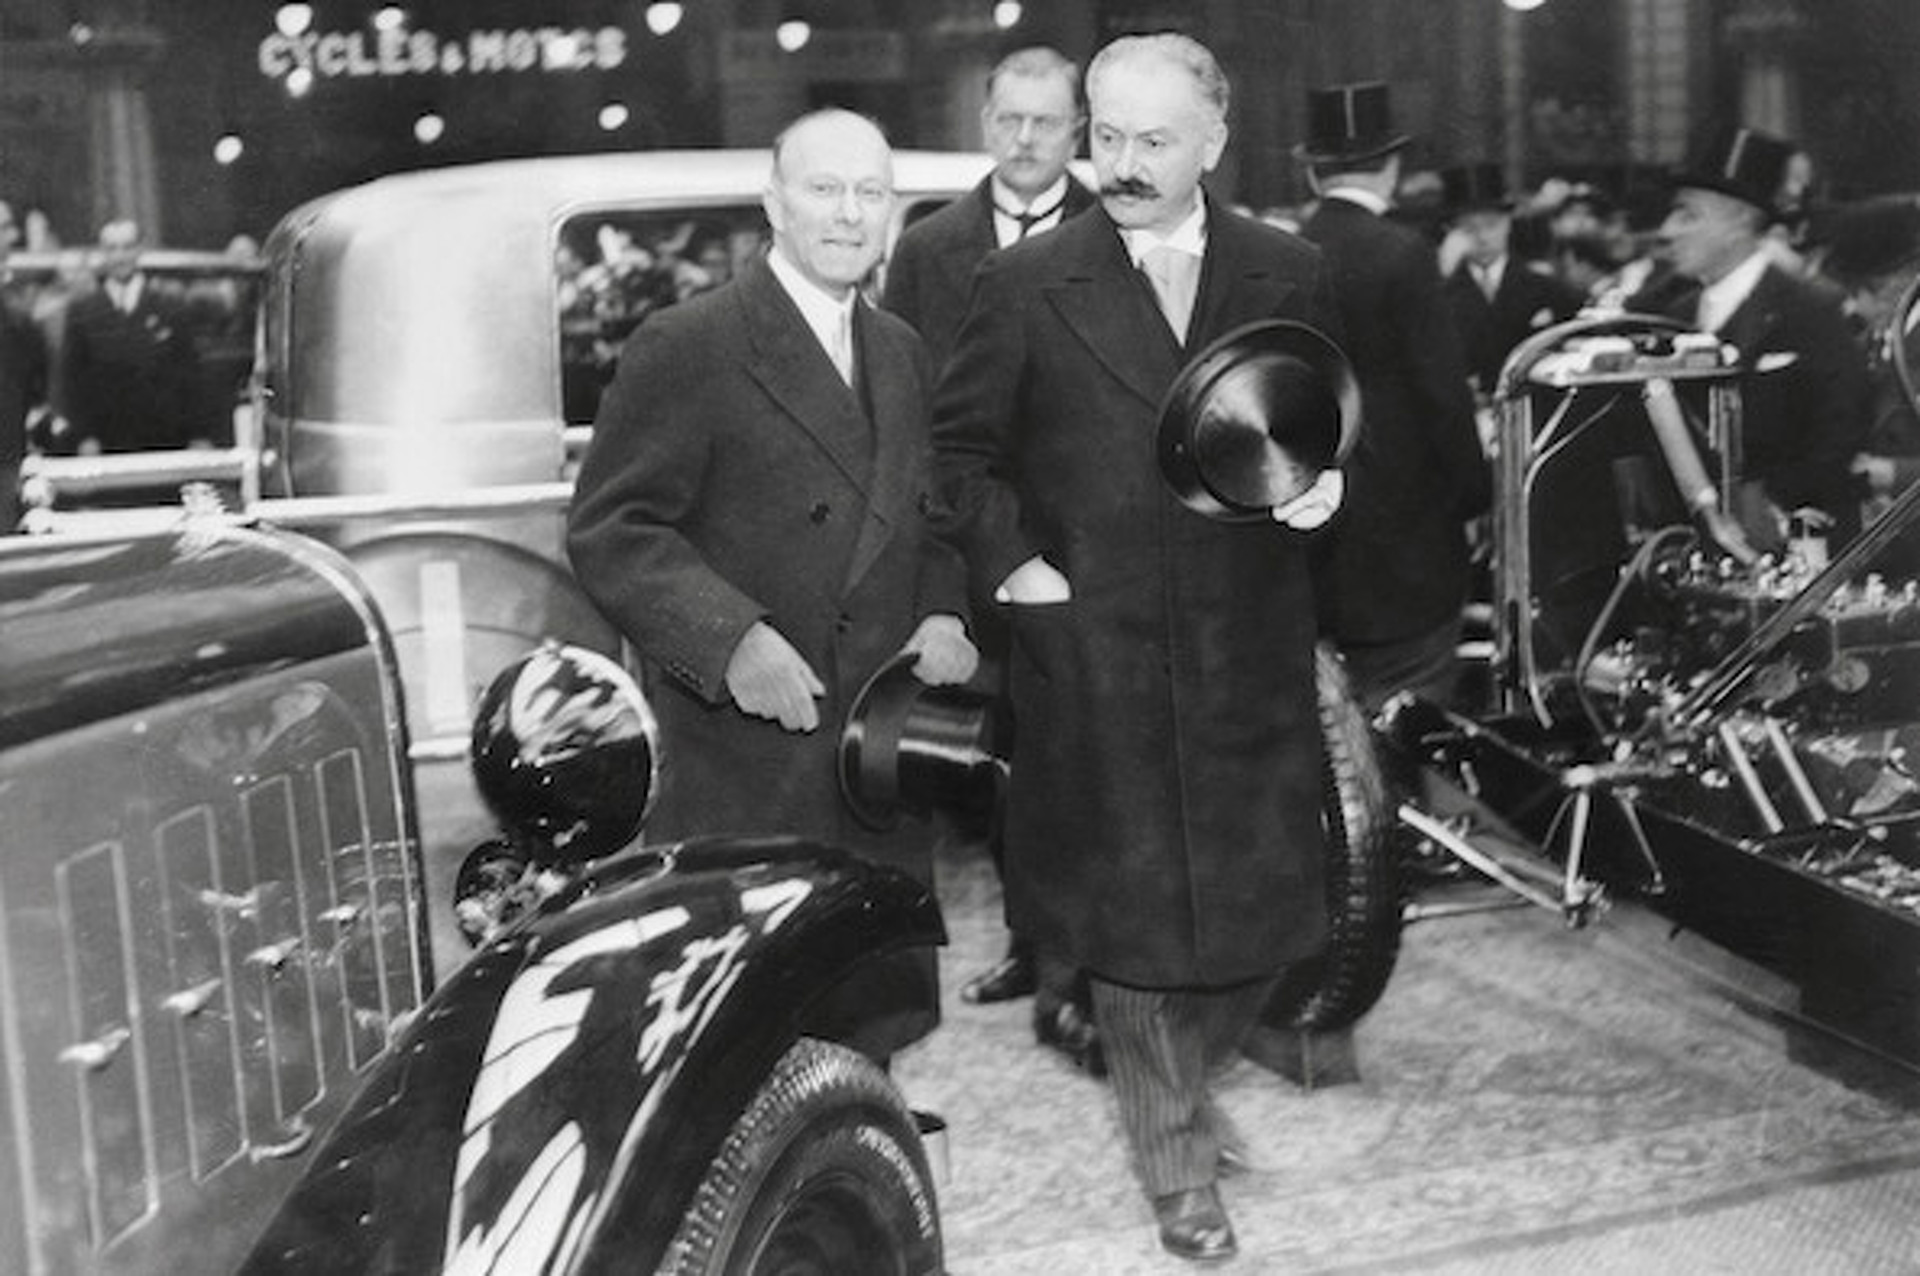 andre-citroen-europes-henry-ford.jpg